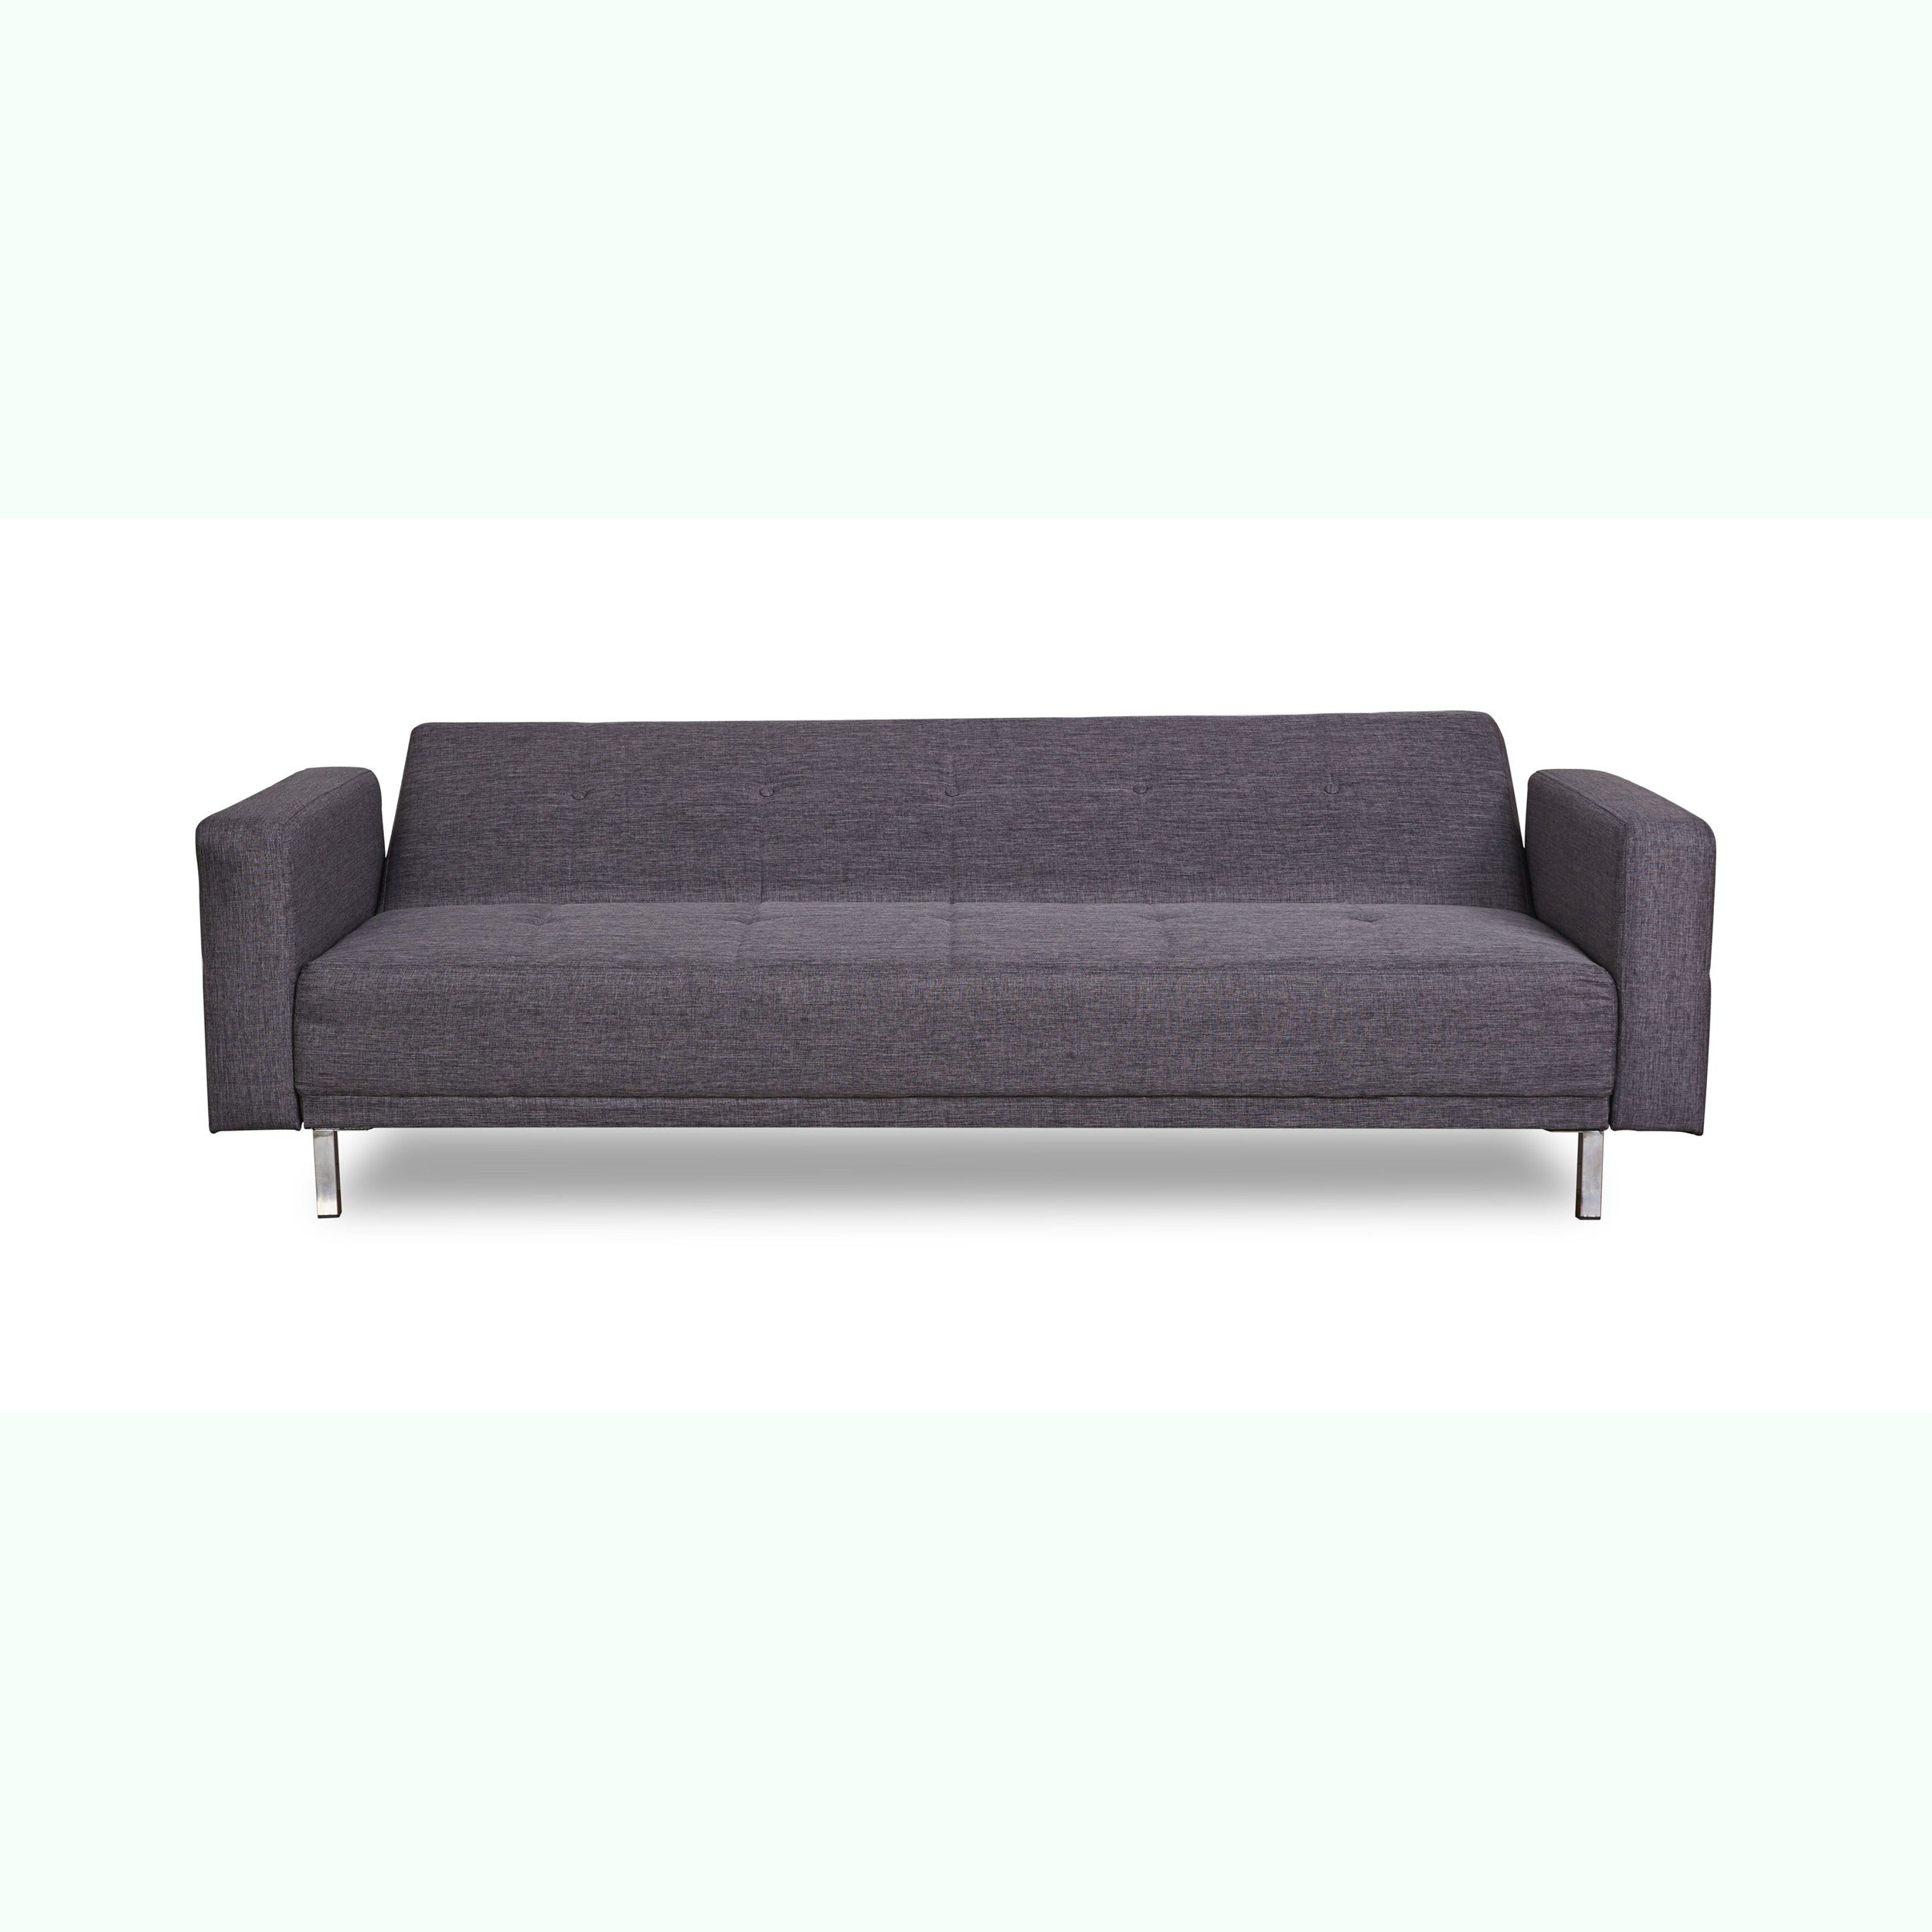 sofa com position dining flip lounge bed pillow couch dp kitchen convertible chair amazon sleeper folding